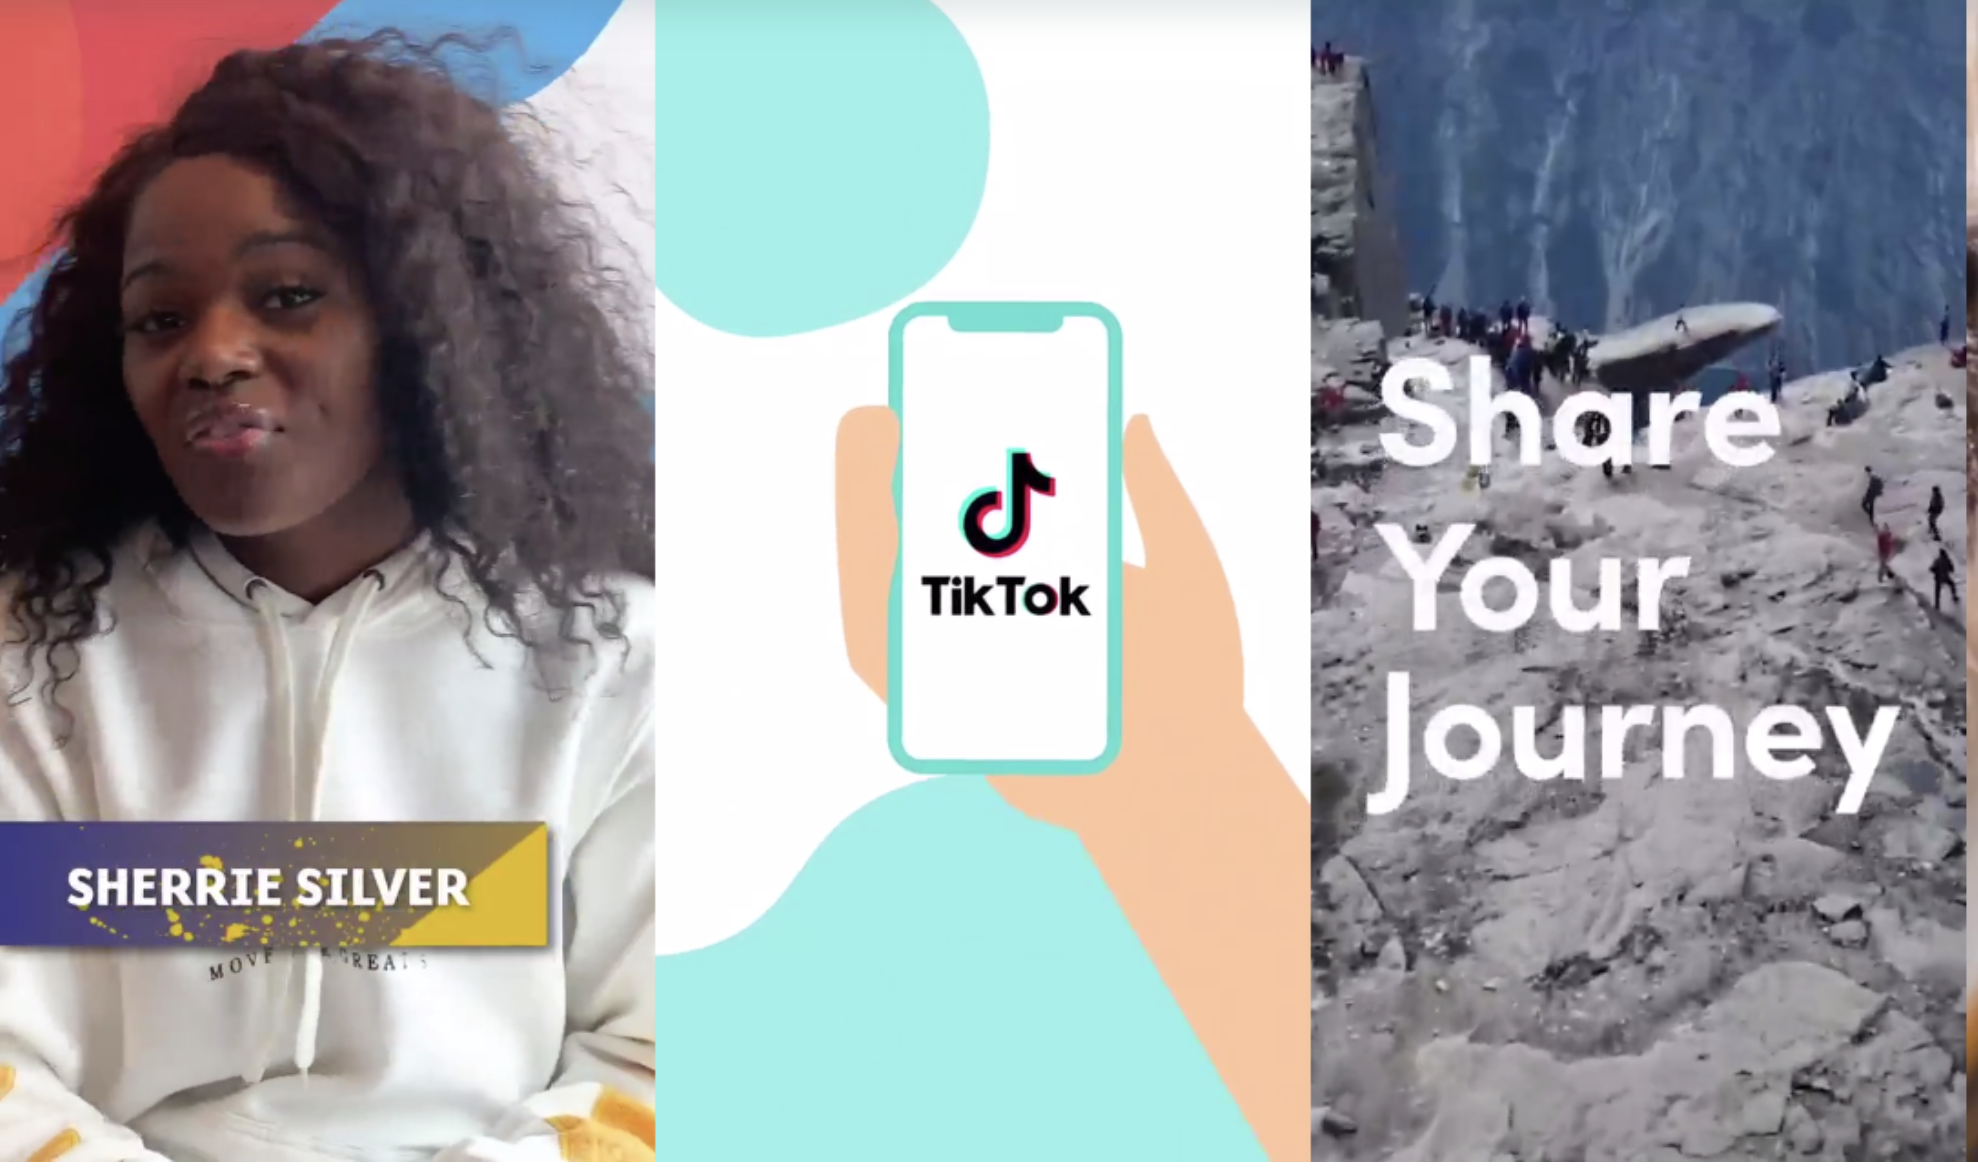 Top 7 Brands on TikTok